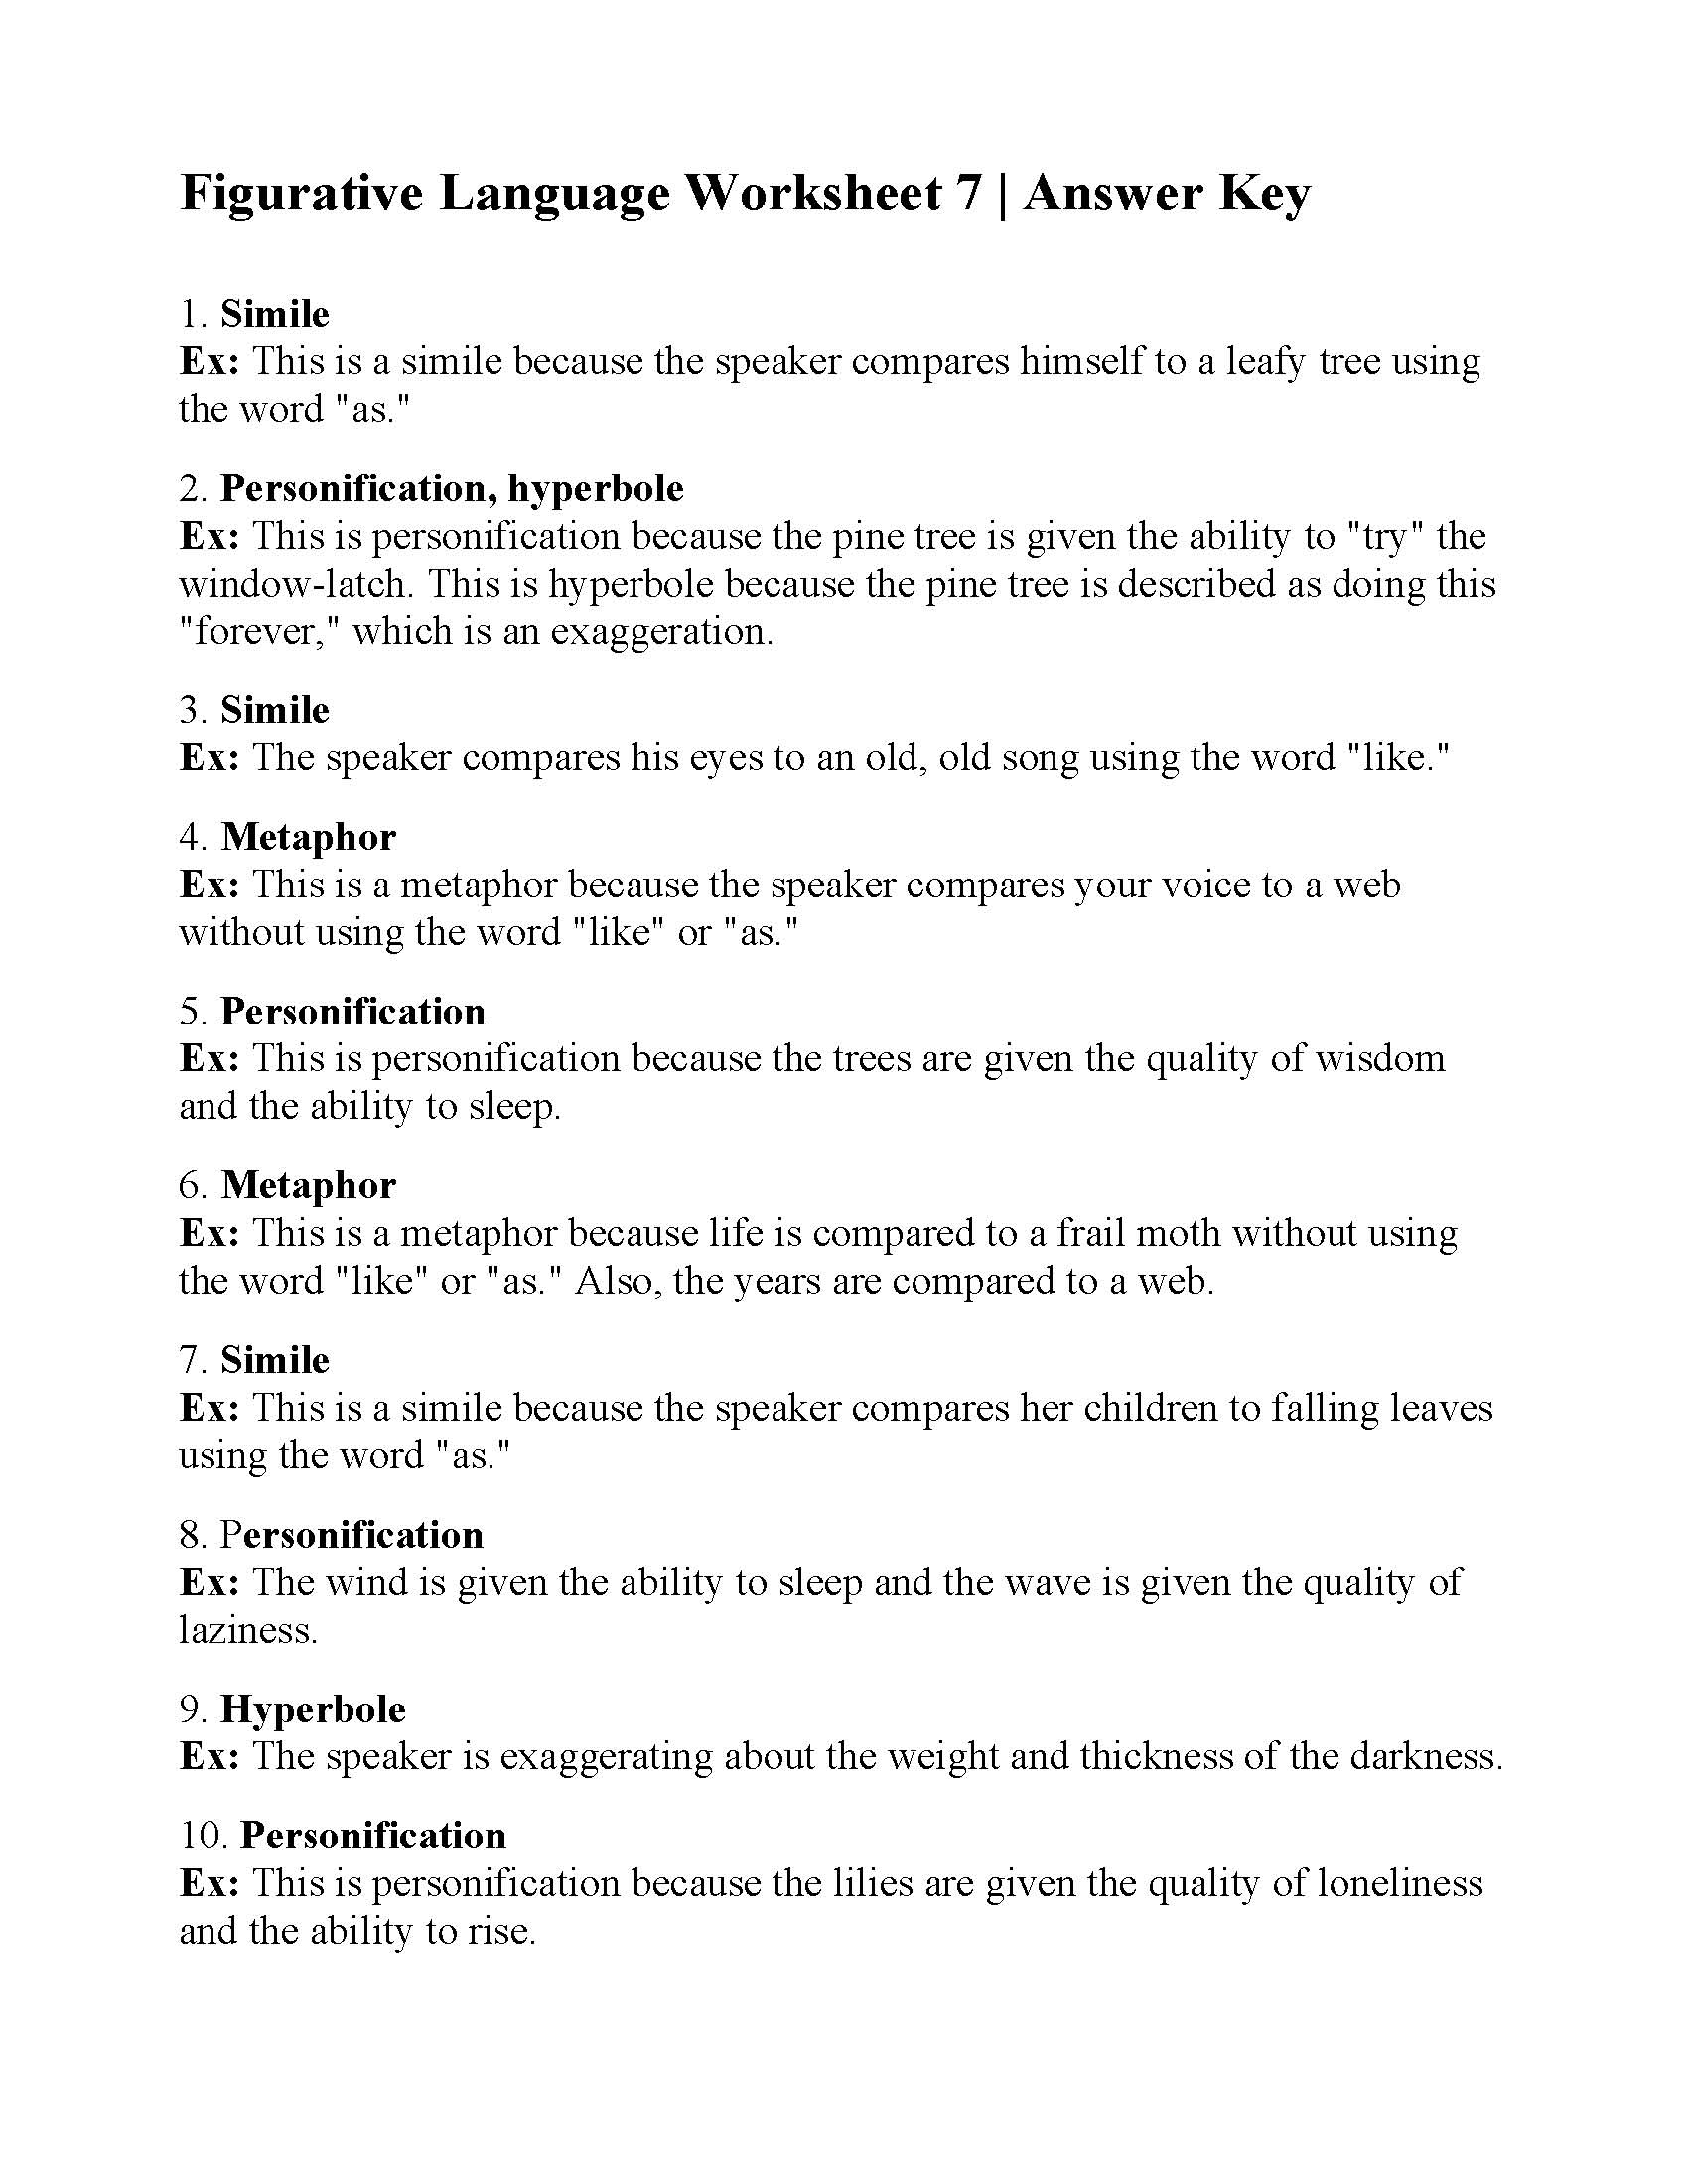 Halloween Figurative Language Worksheet Answer Key ...